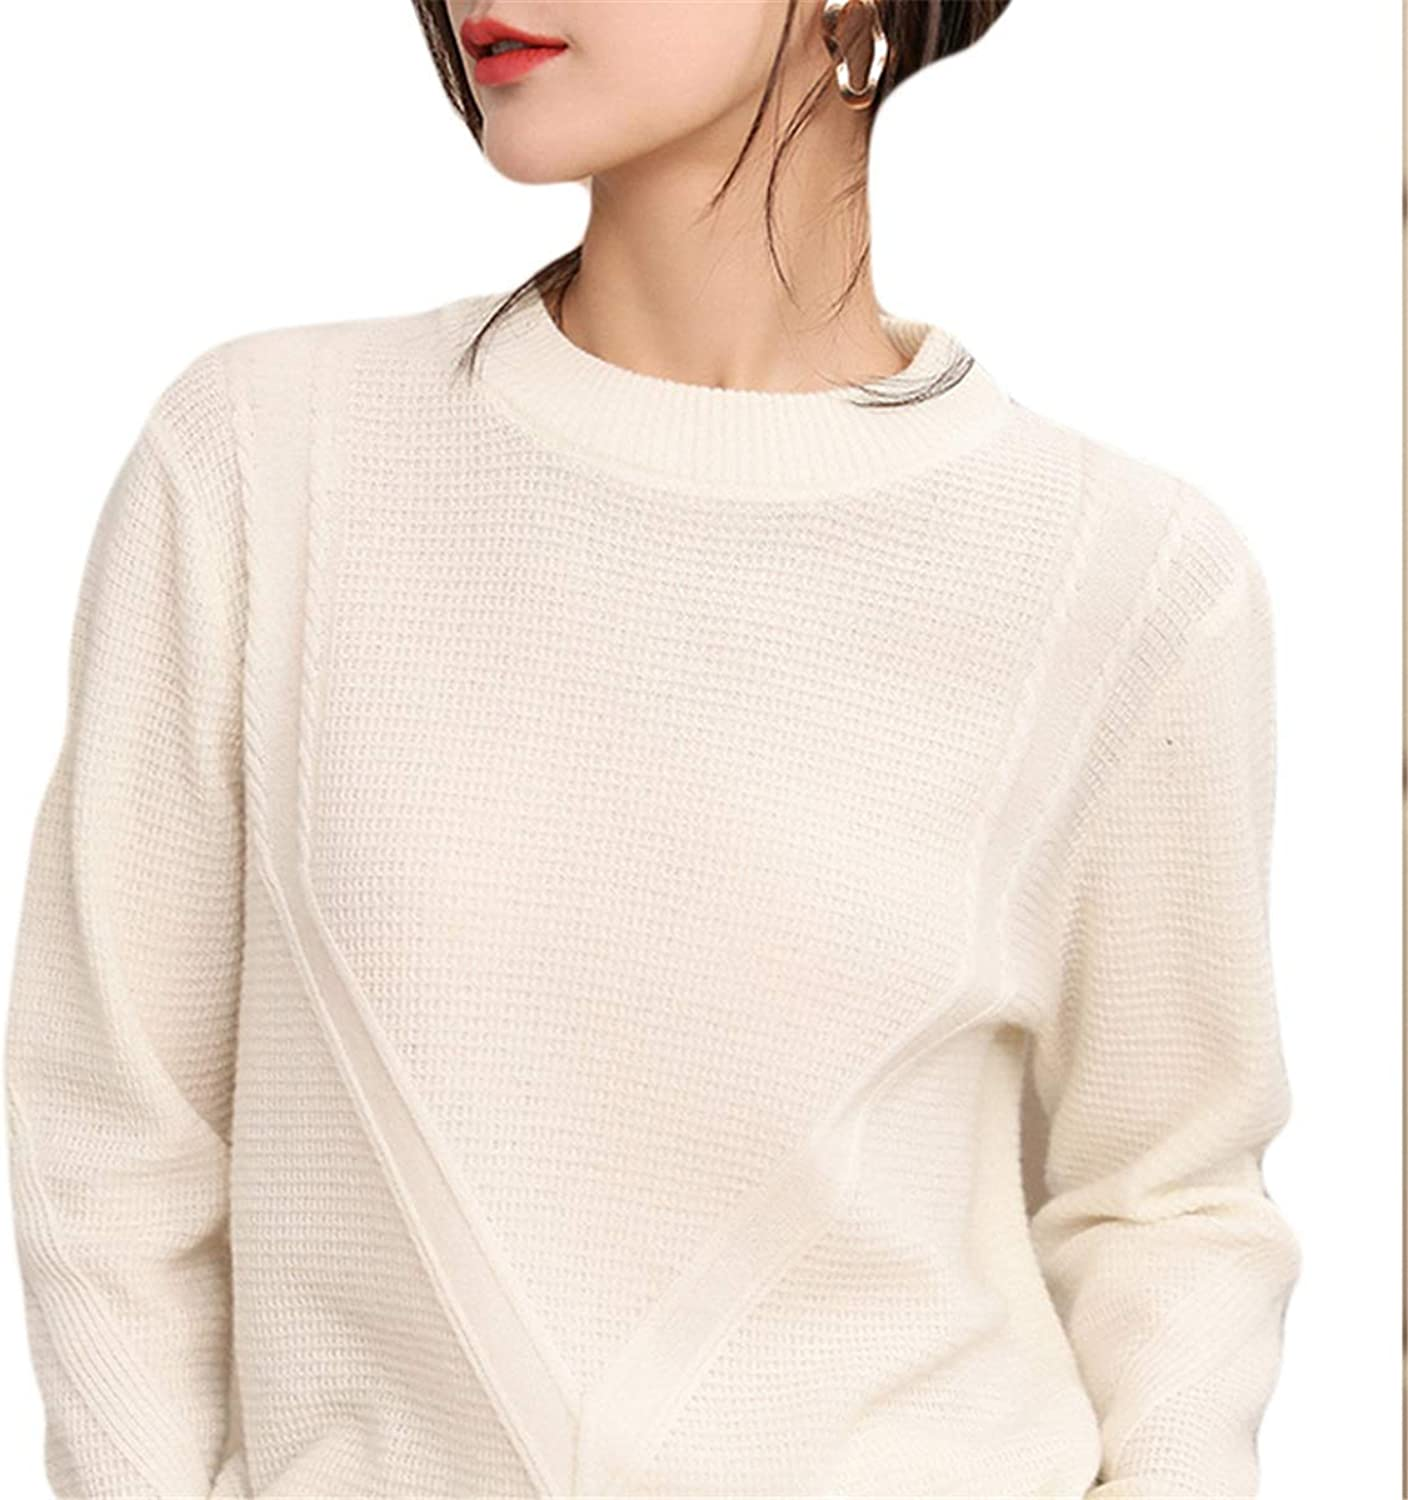 MCieloLuna Women's Cashmere Knitted Crew Neck Long Sleeve Sweaters